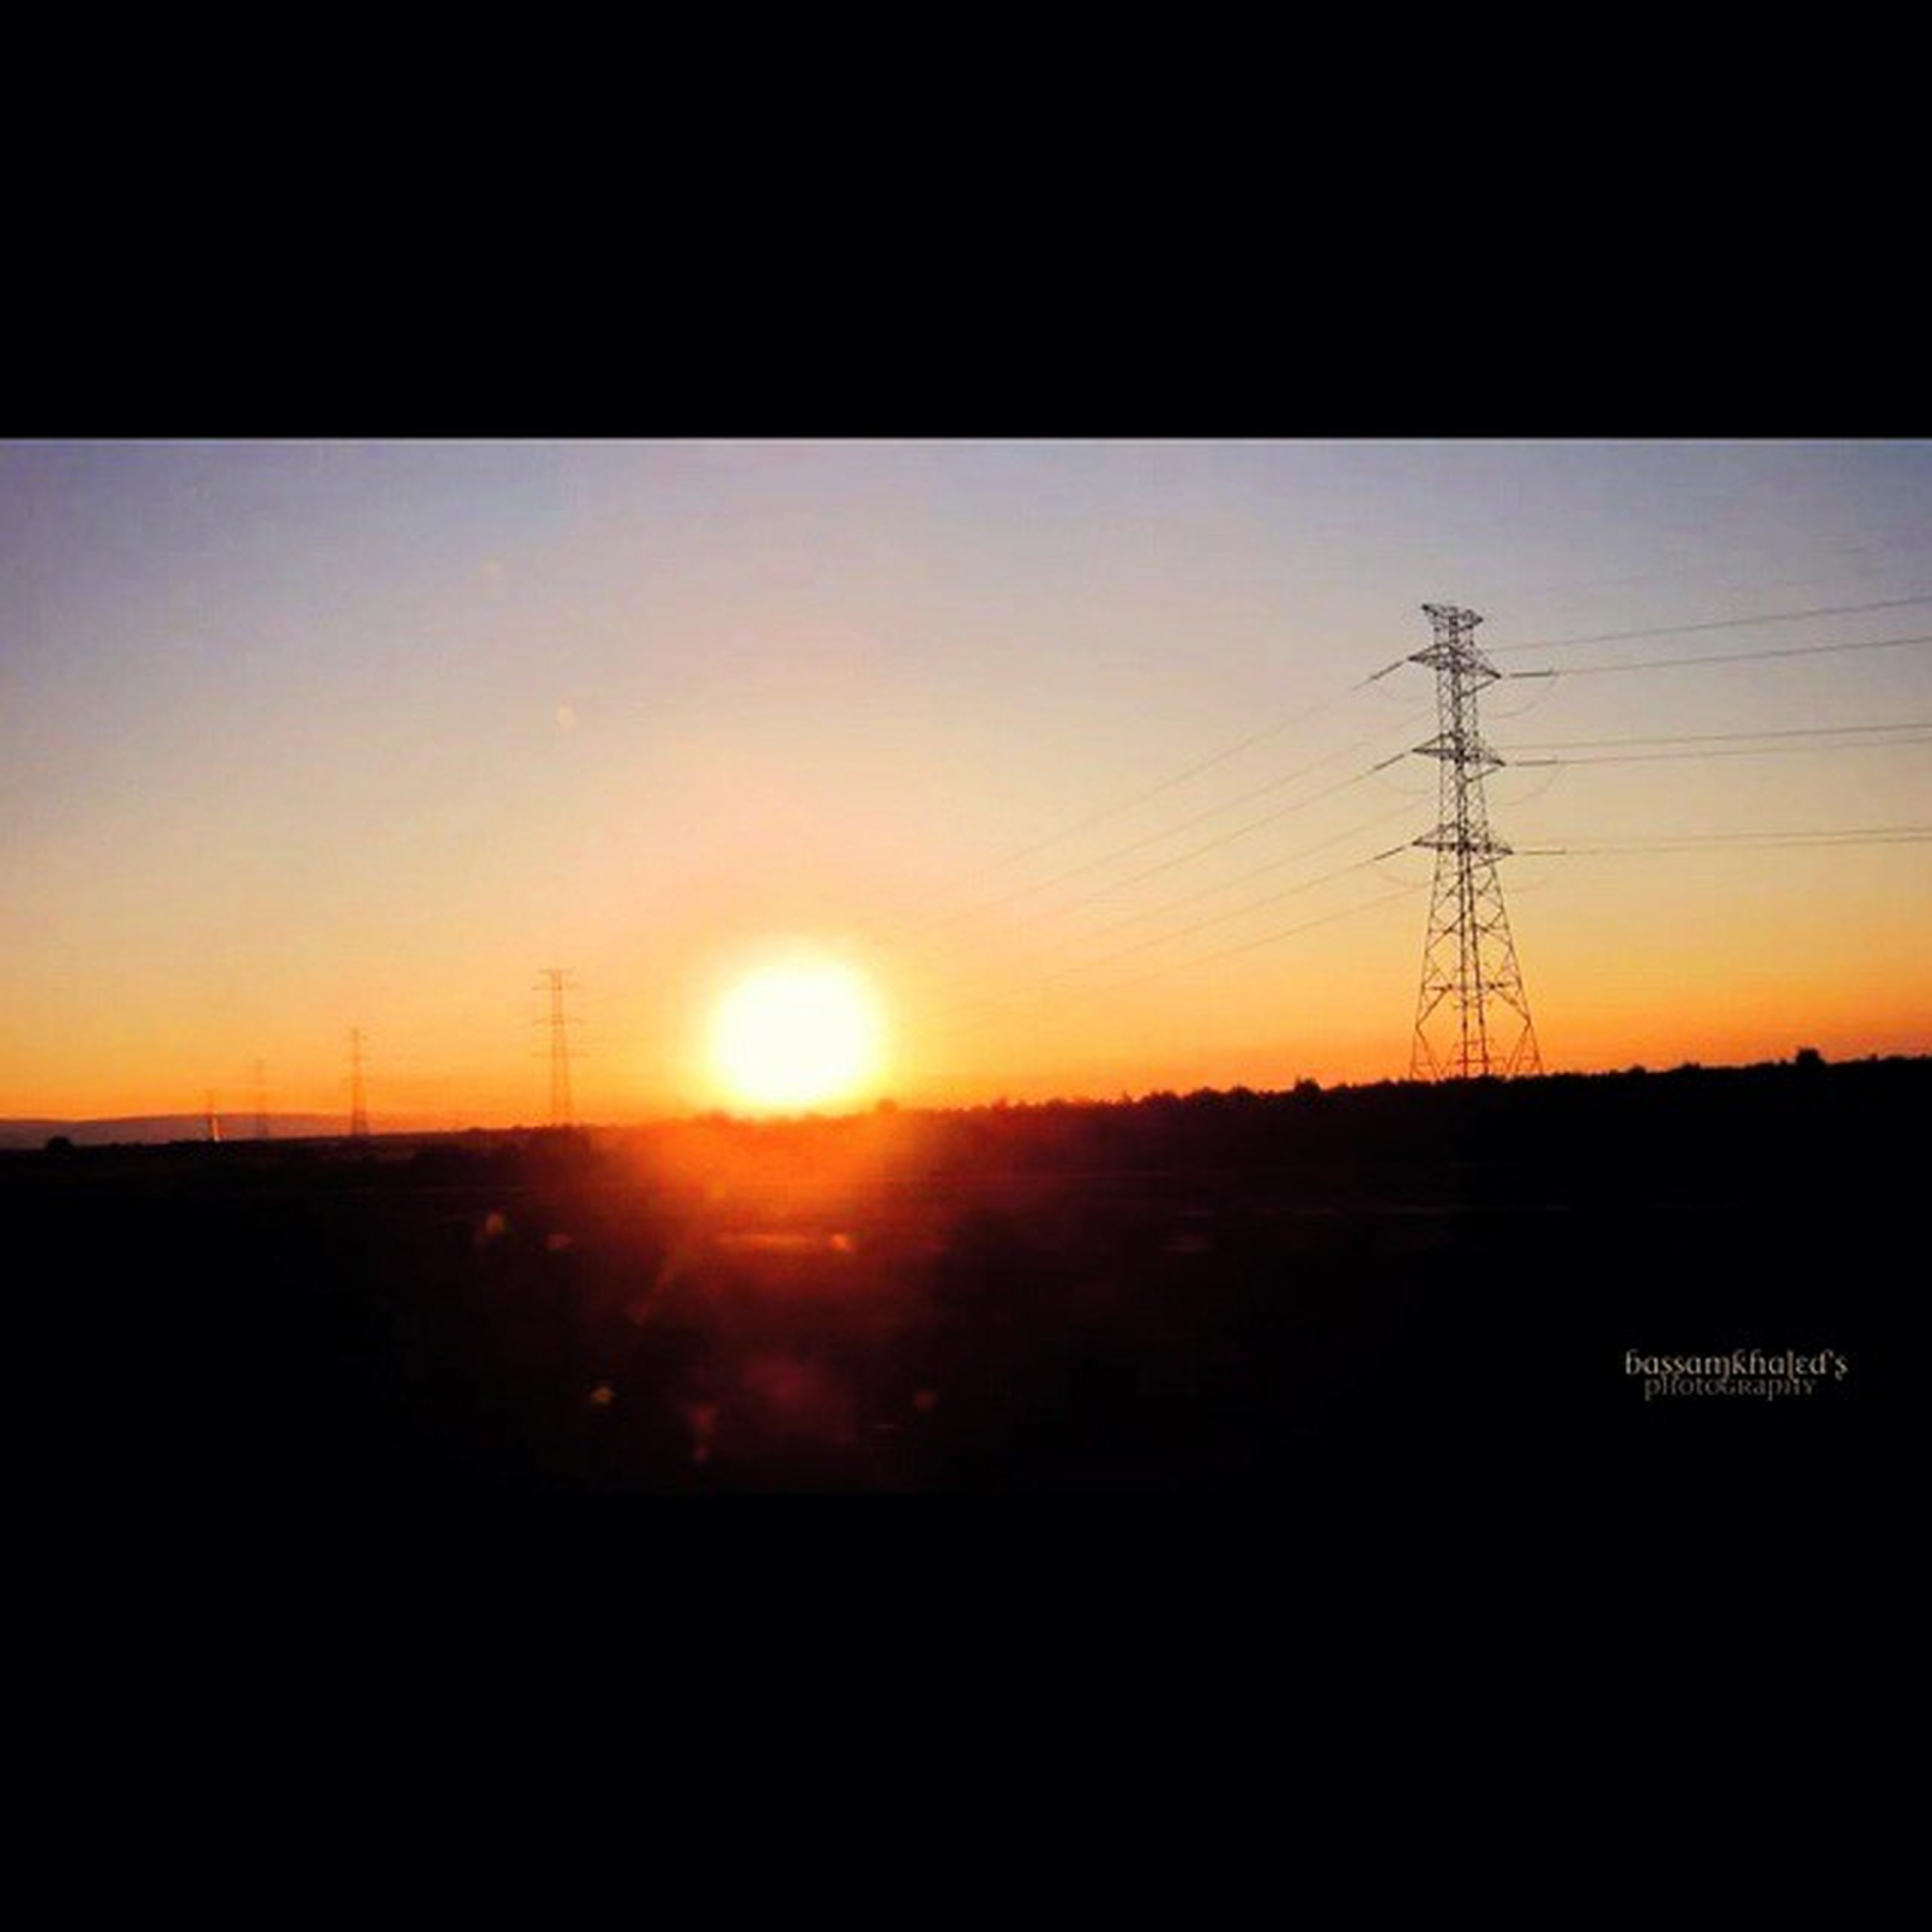 sunset, electricity pylon, power line, silhouette, sun, power supply, electricity, connection, cable, fuel and power generation, landscape, orange color, sky, scenics, tranquility, tranquil scene, power cable, nature, sunlight, beauty in nature